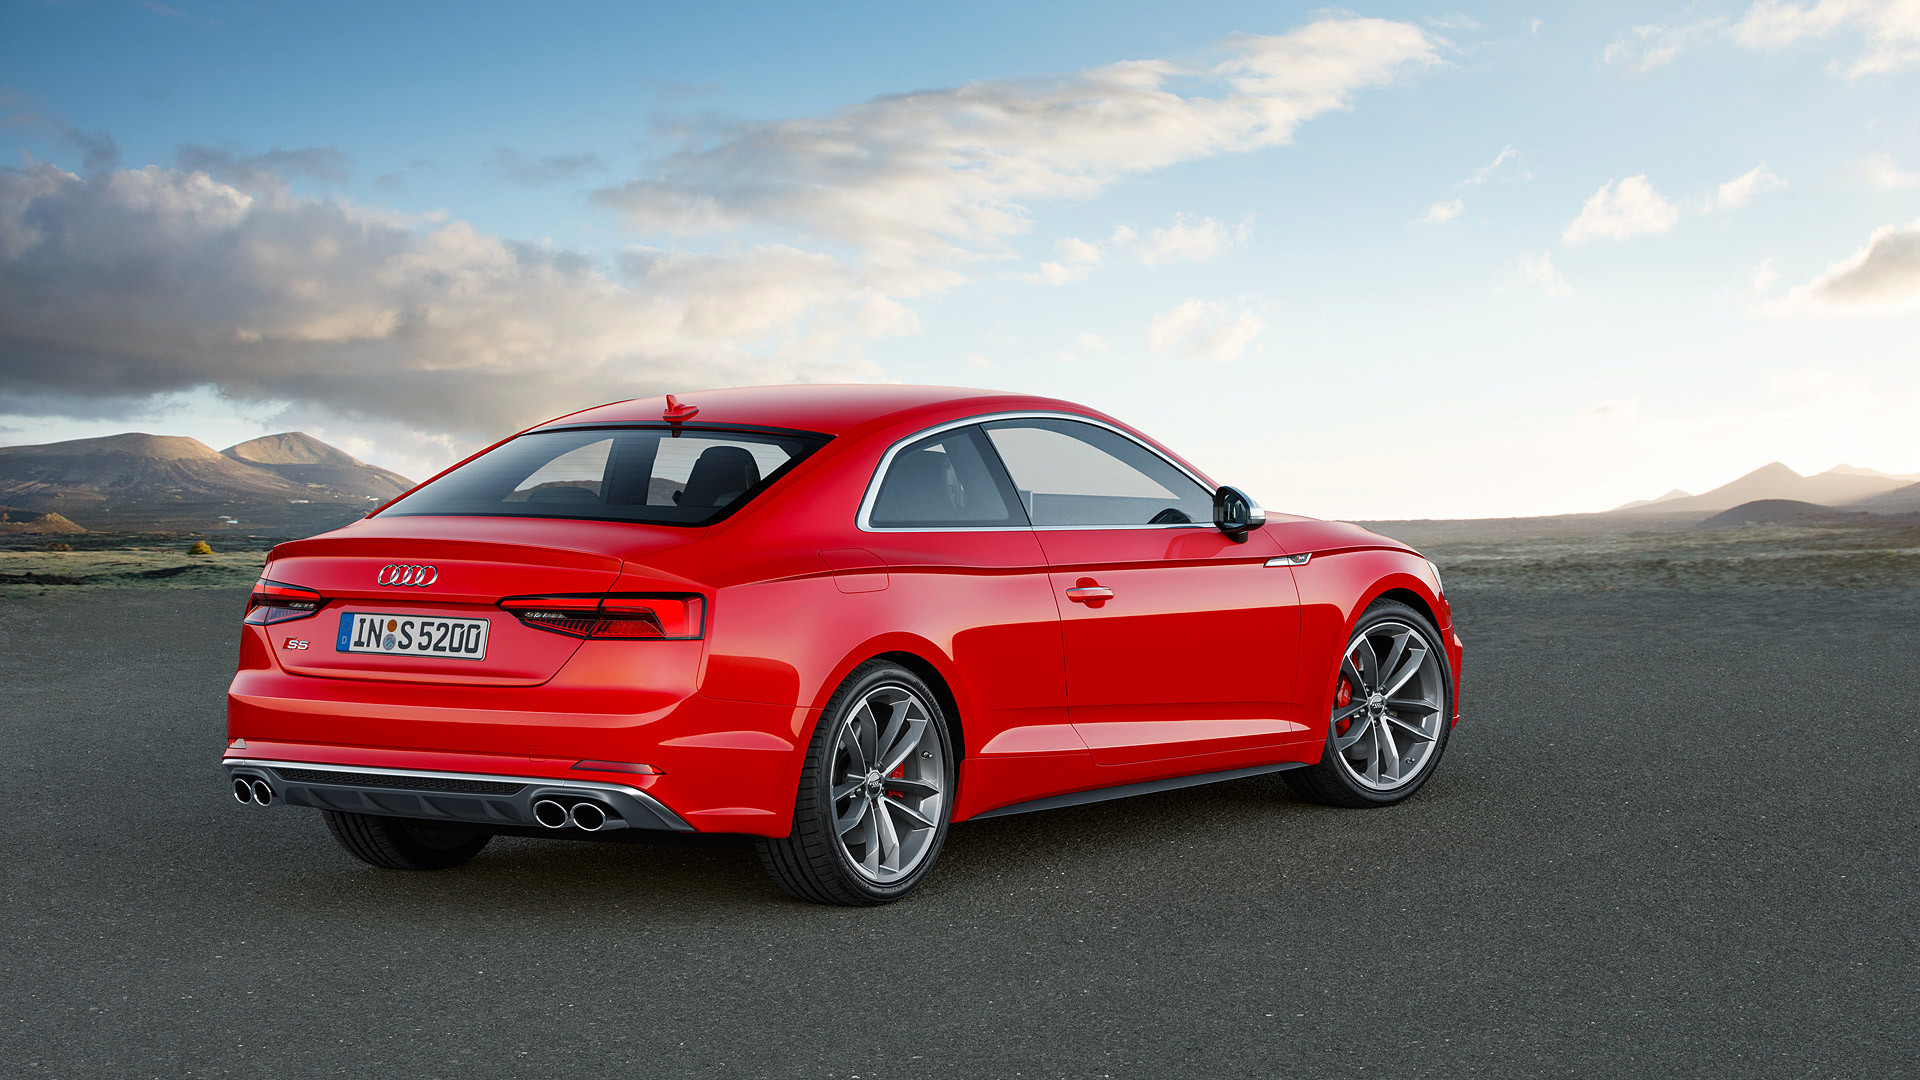 Res: 1920x1080, 2017 Audi S5 Coupe picture.